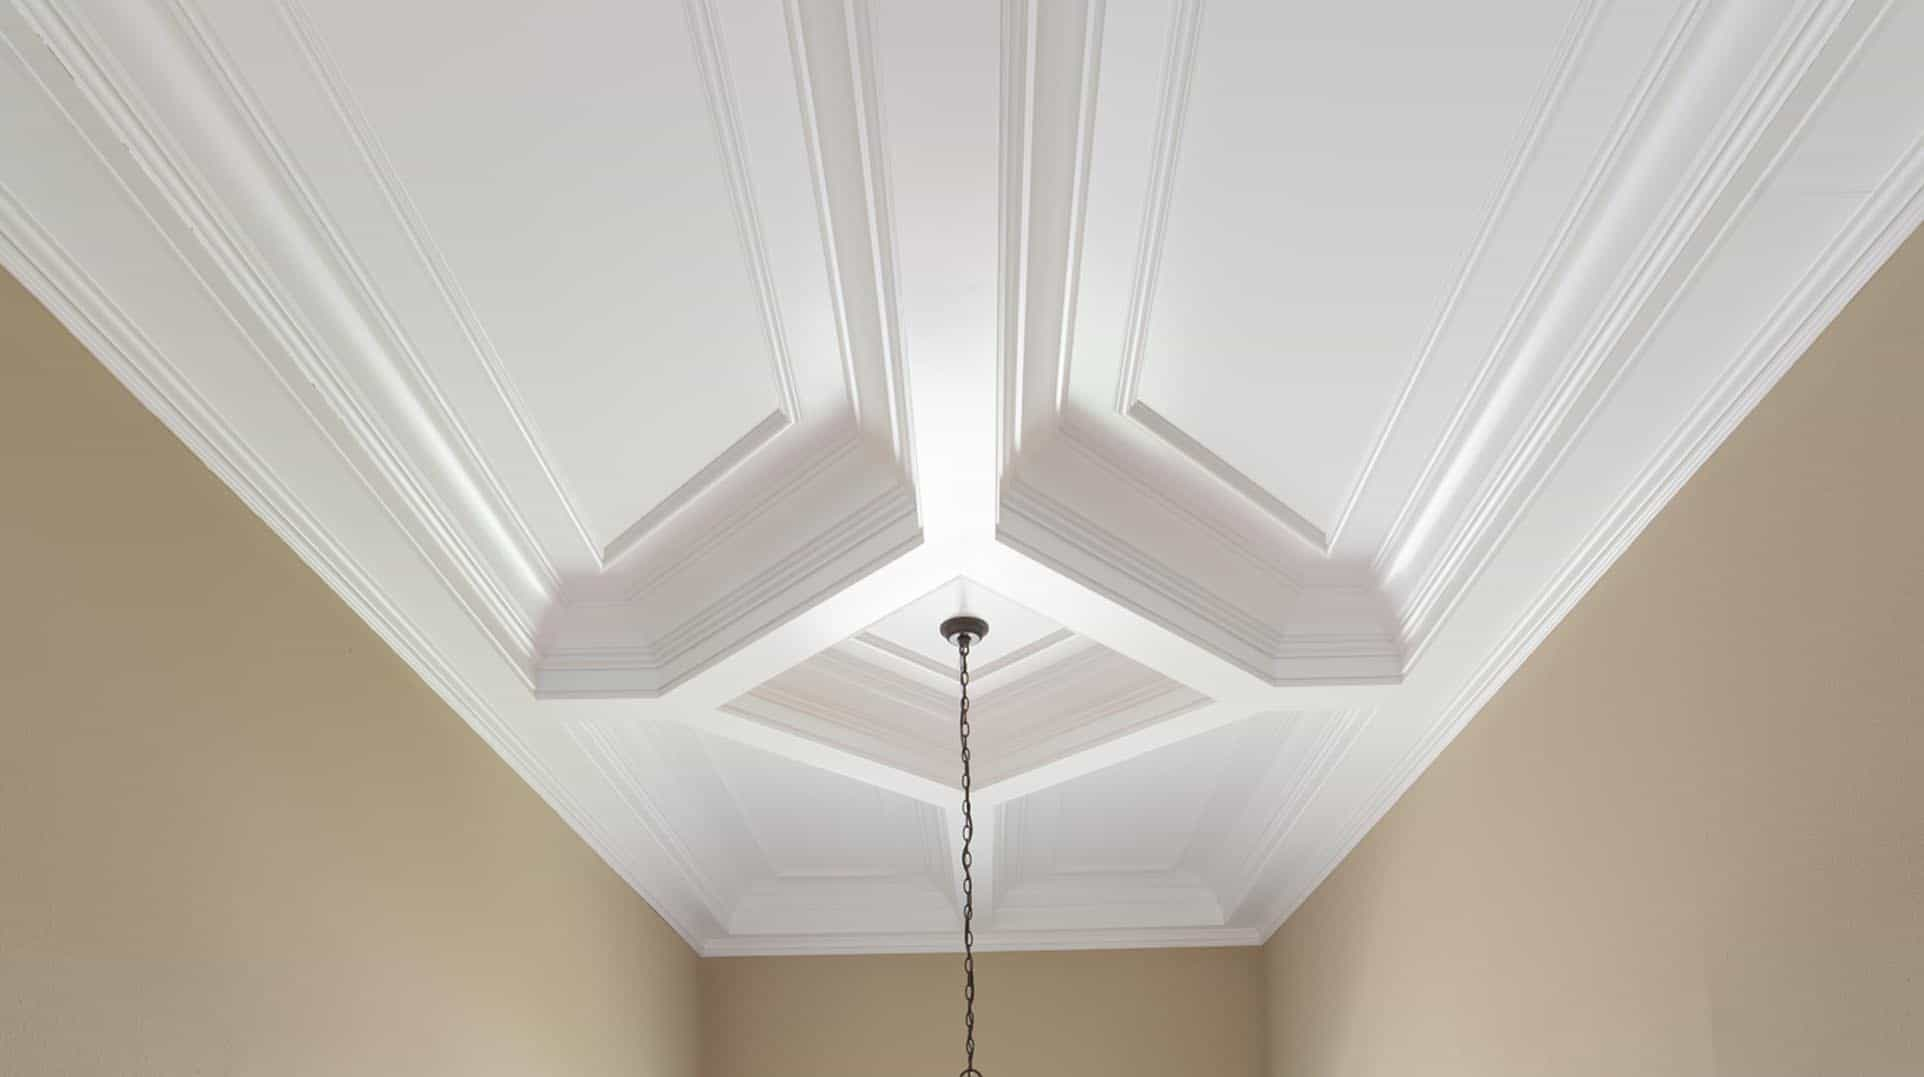 Coffered ceiling coffered ceilings ceiling treatment ceiling design ceiling panel faux